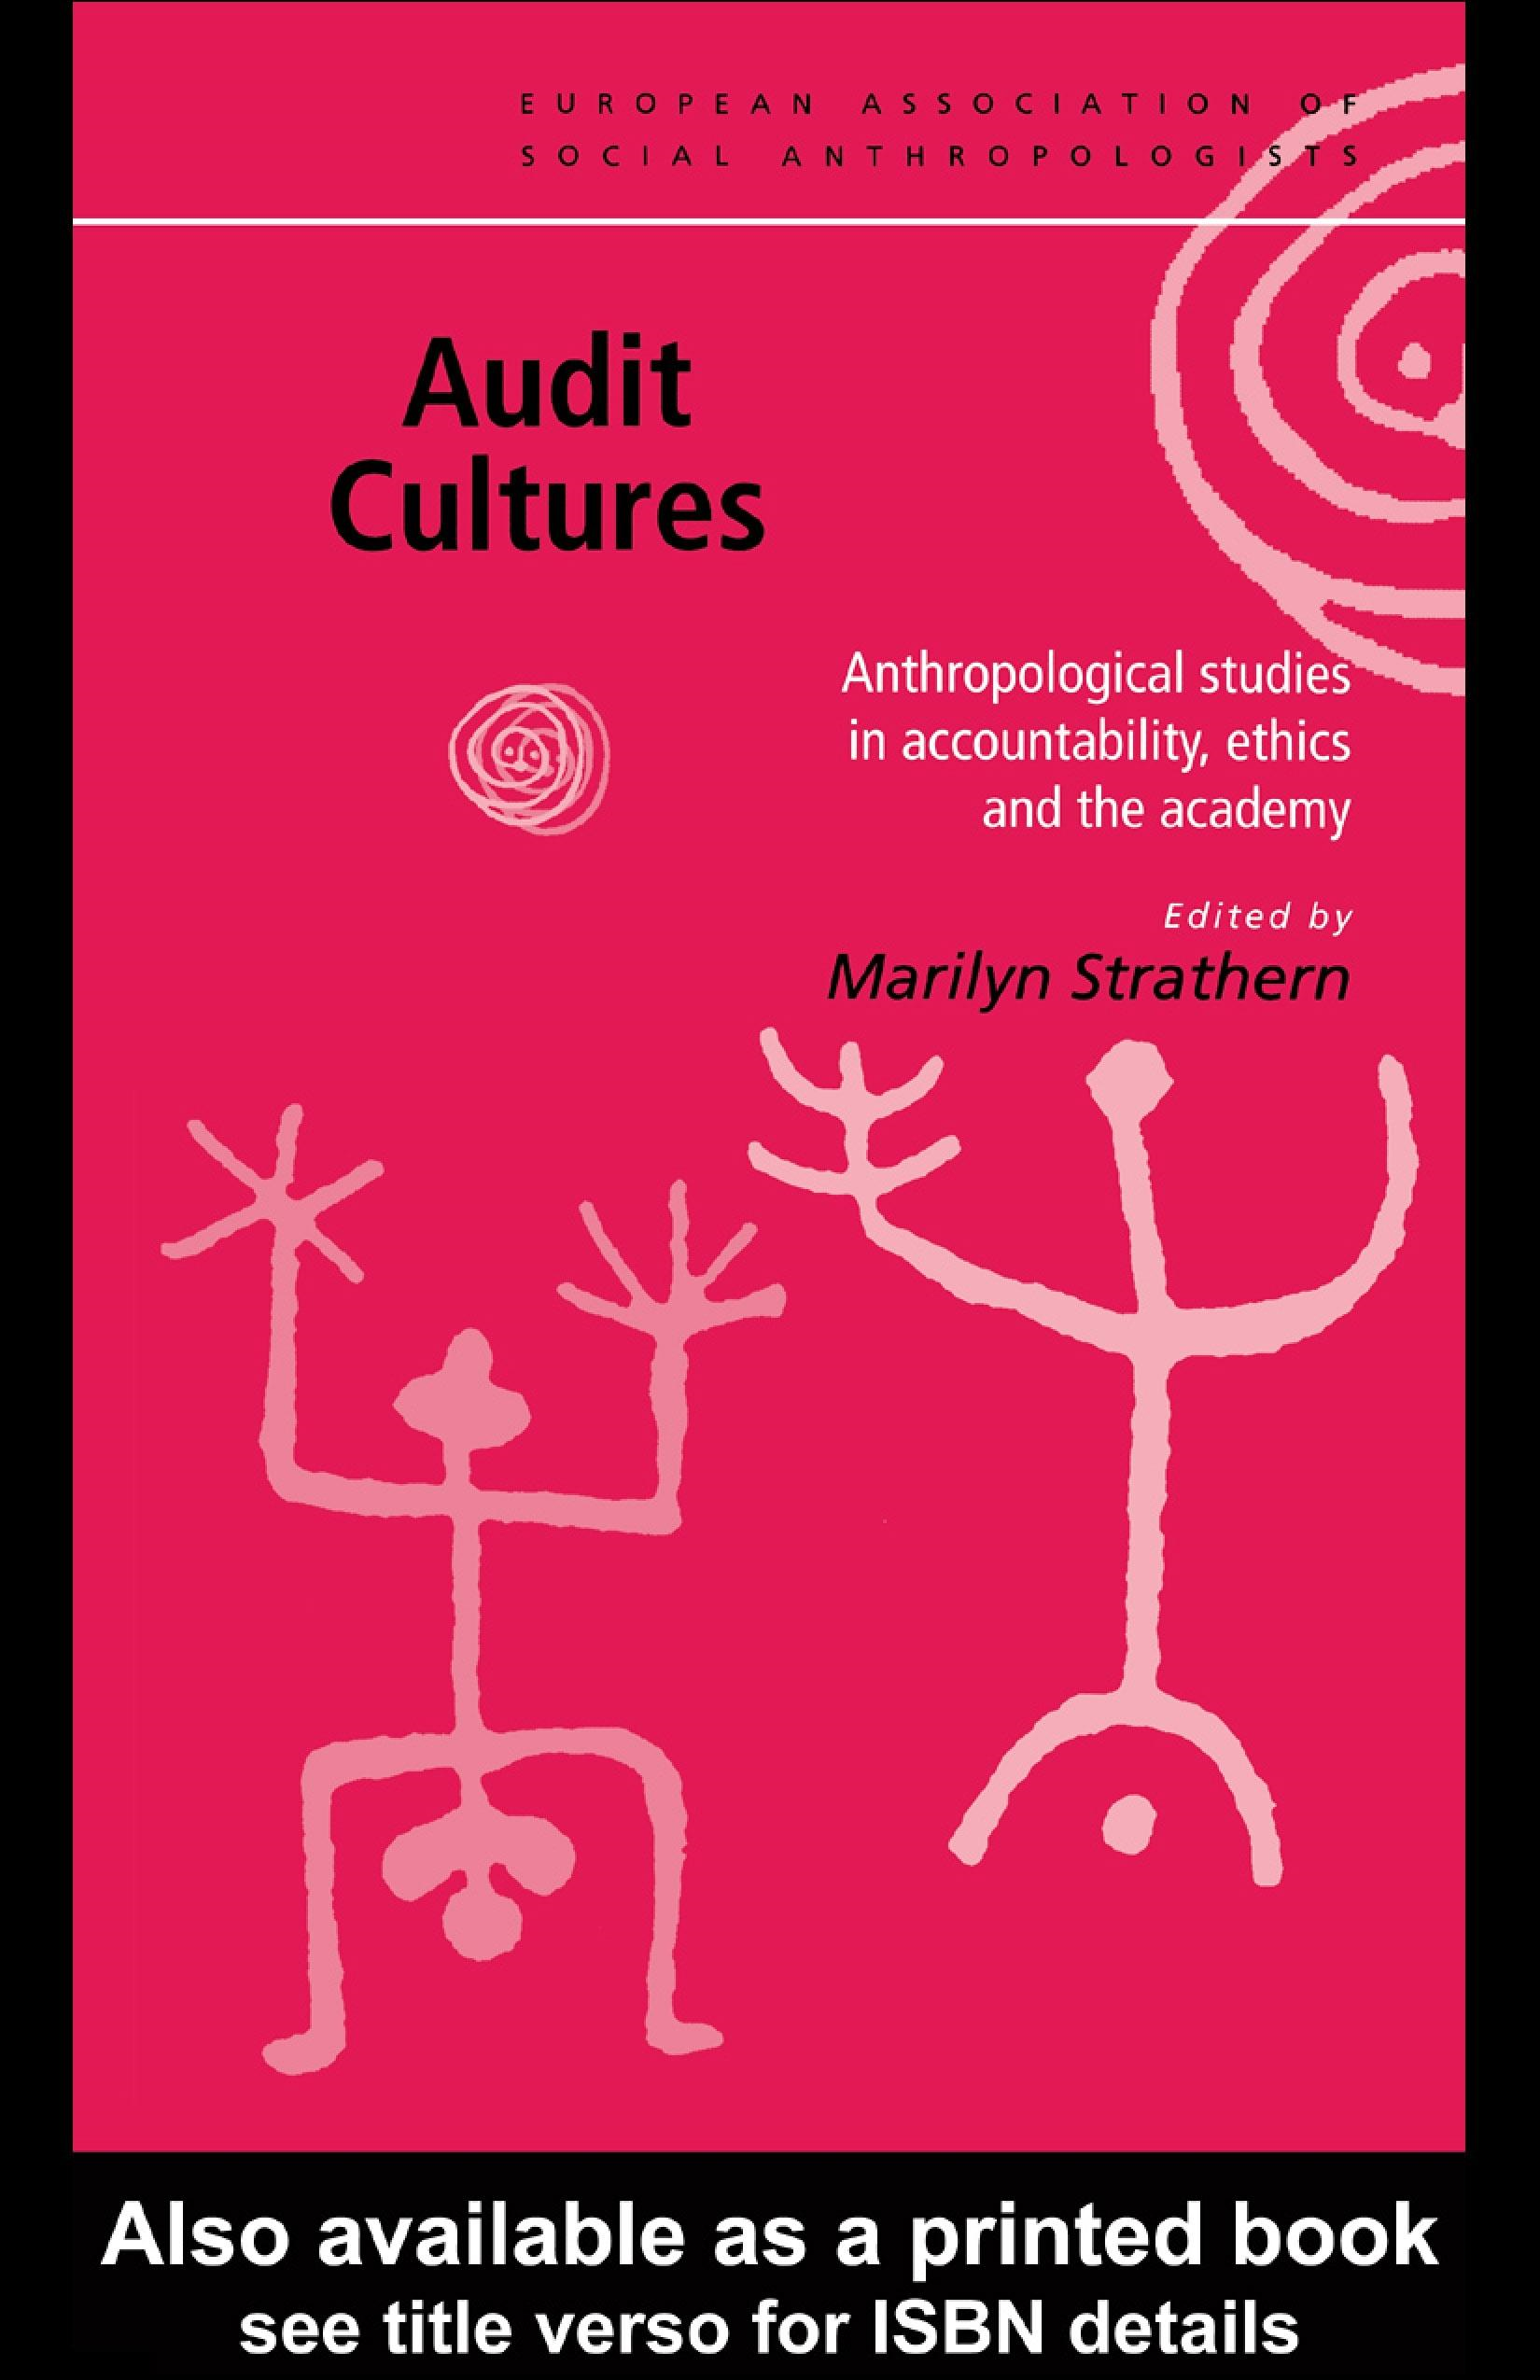 Audit Cultures: Anthropological Studies in Accountability, Ethics and the Academy